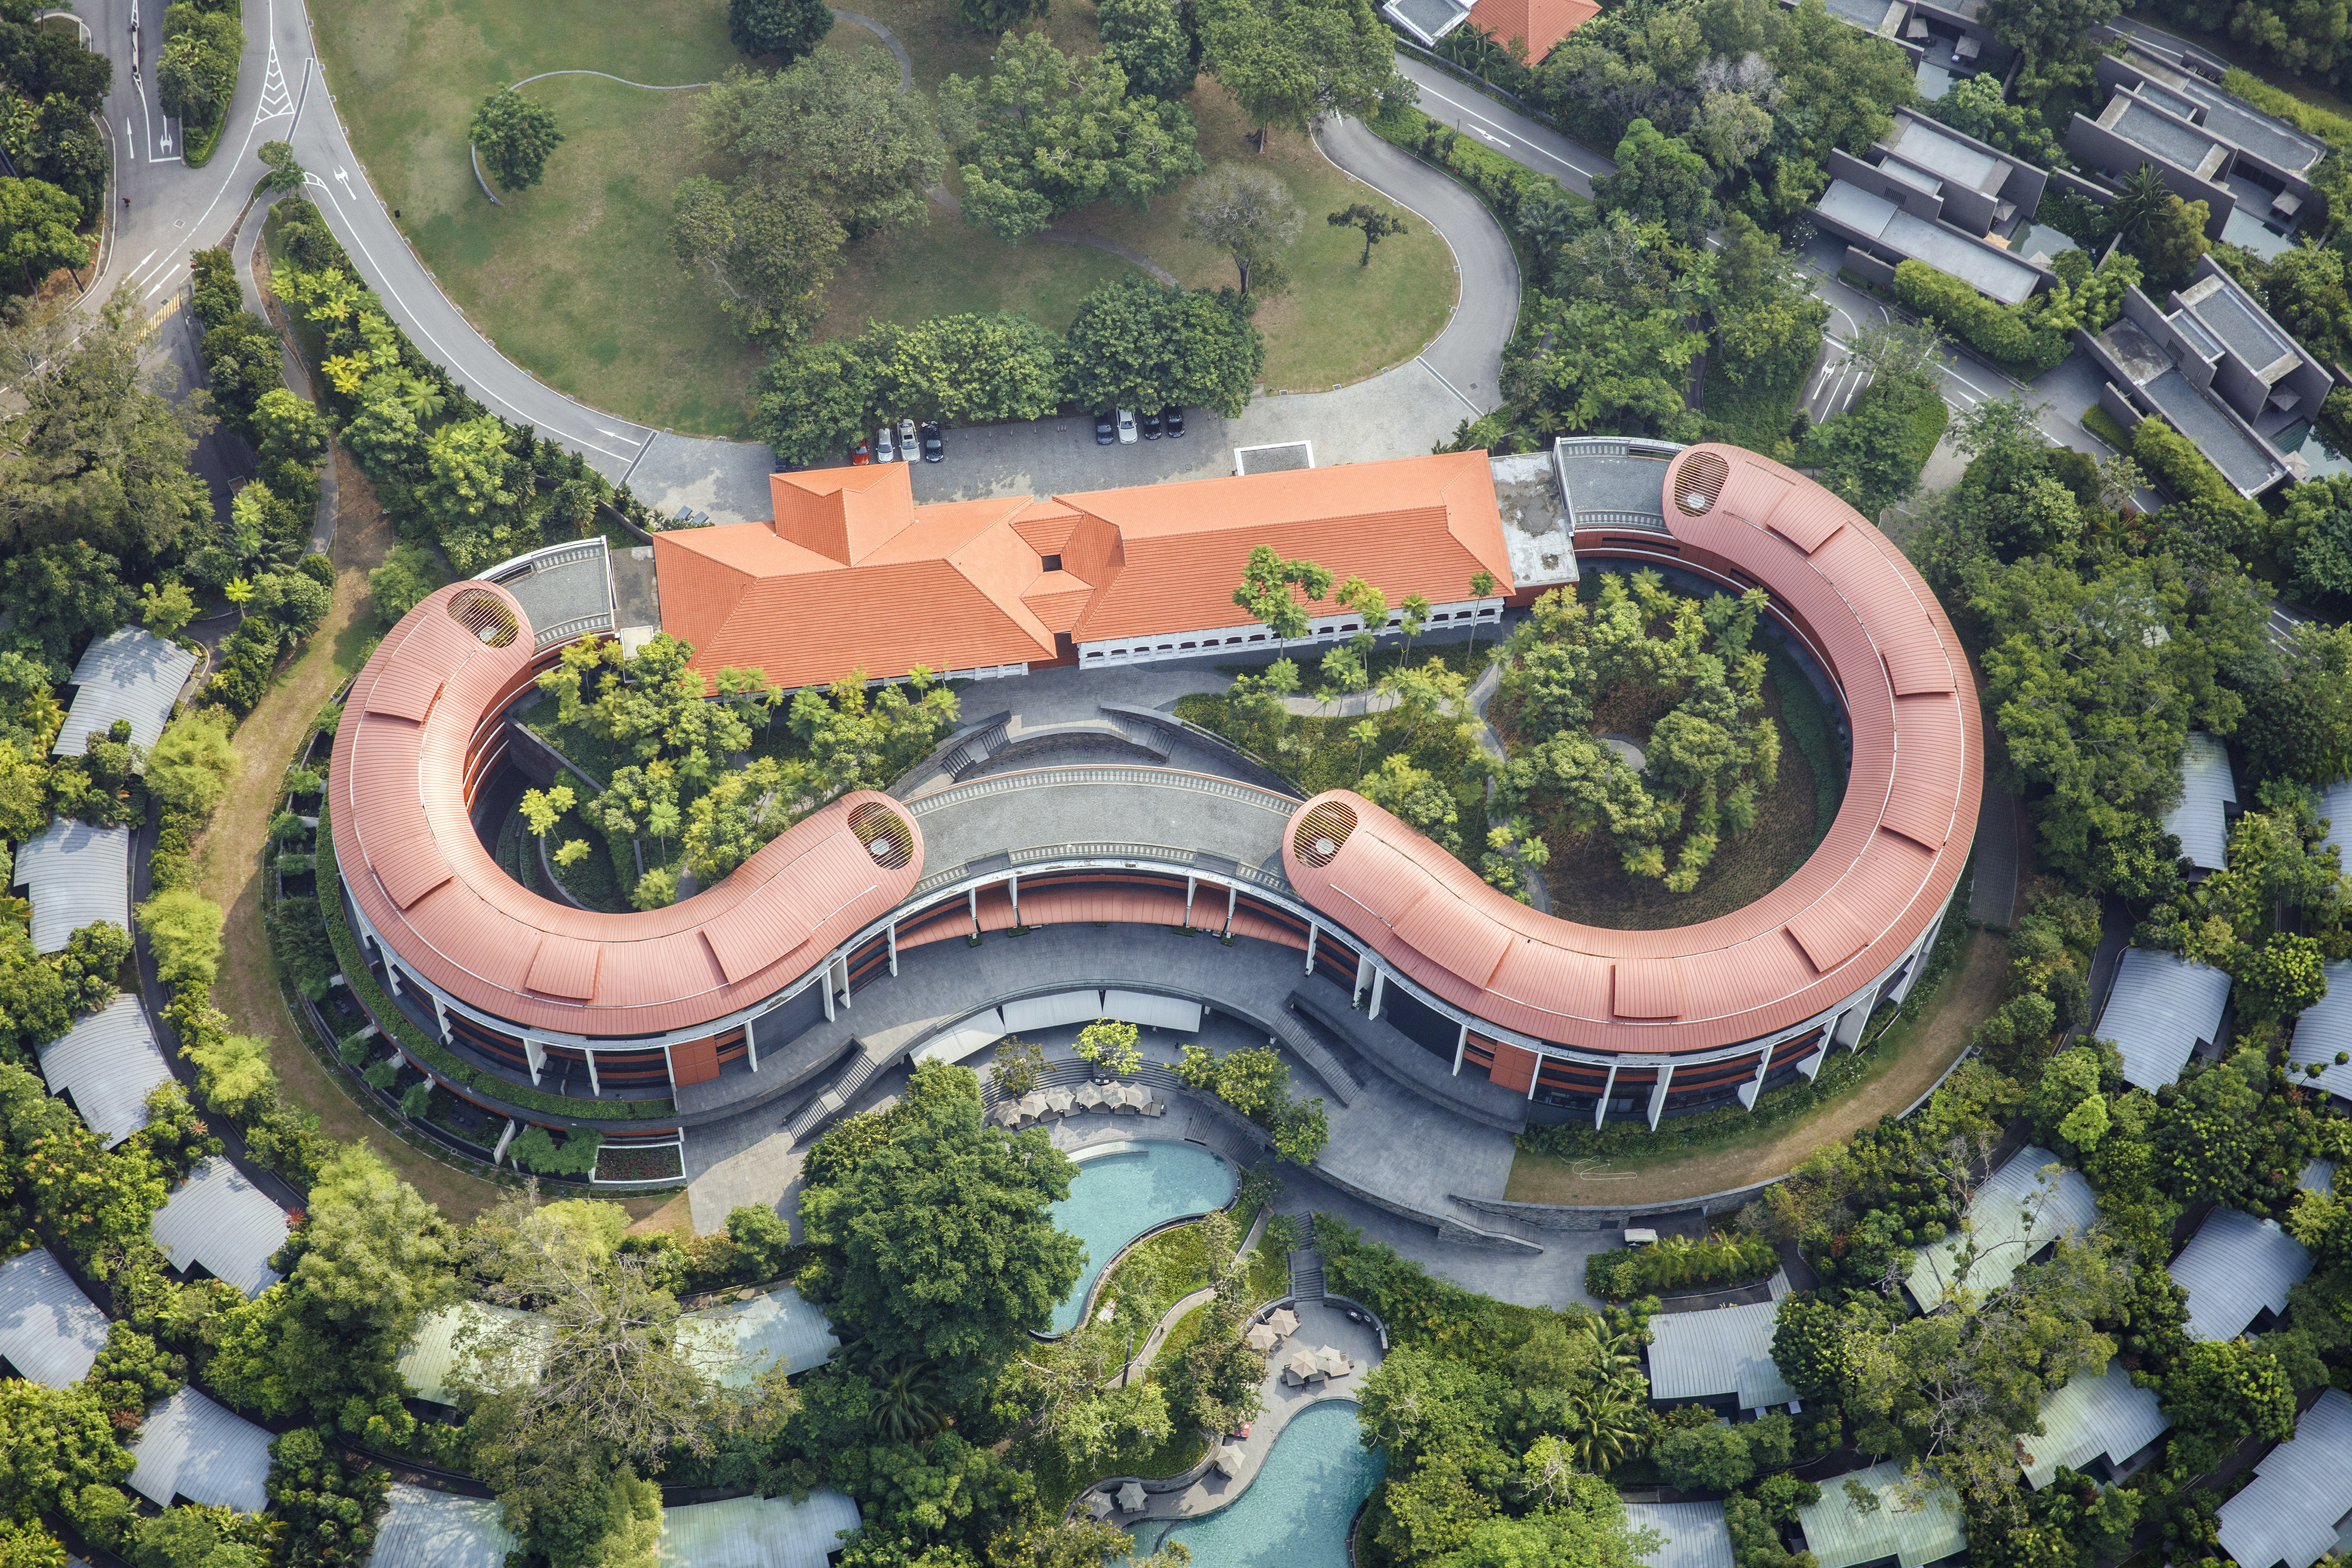 The Capella Singapore Hotel stands on Sentosa Island in this aerial photograph taken above Singapore, on Thursday, July 2, 2015. Singapore's economy contracted more than analysts predicted last quarter, underscoring the weakening outlook for Asian nations amid sluggish global growth. The local dollar weakened to its lowest level in more than a month. Photographer: Darren Soh/Bloomberg via Getty Images